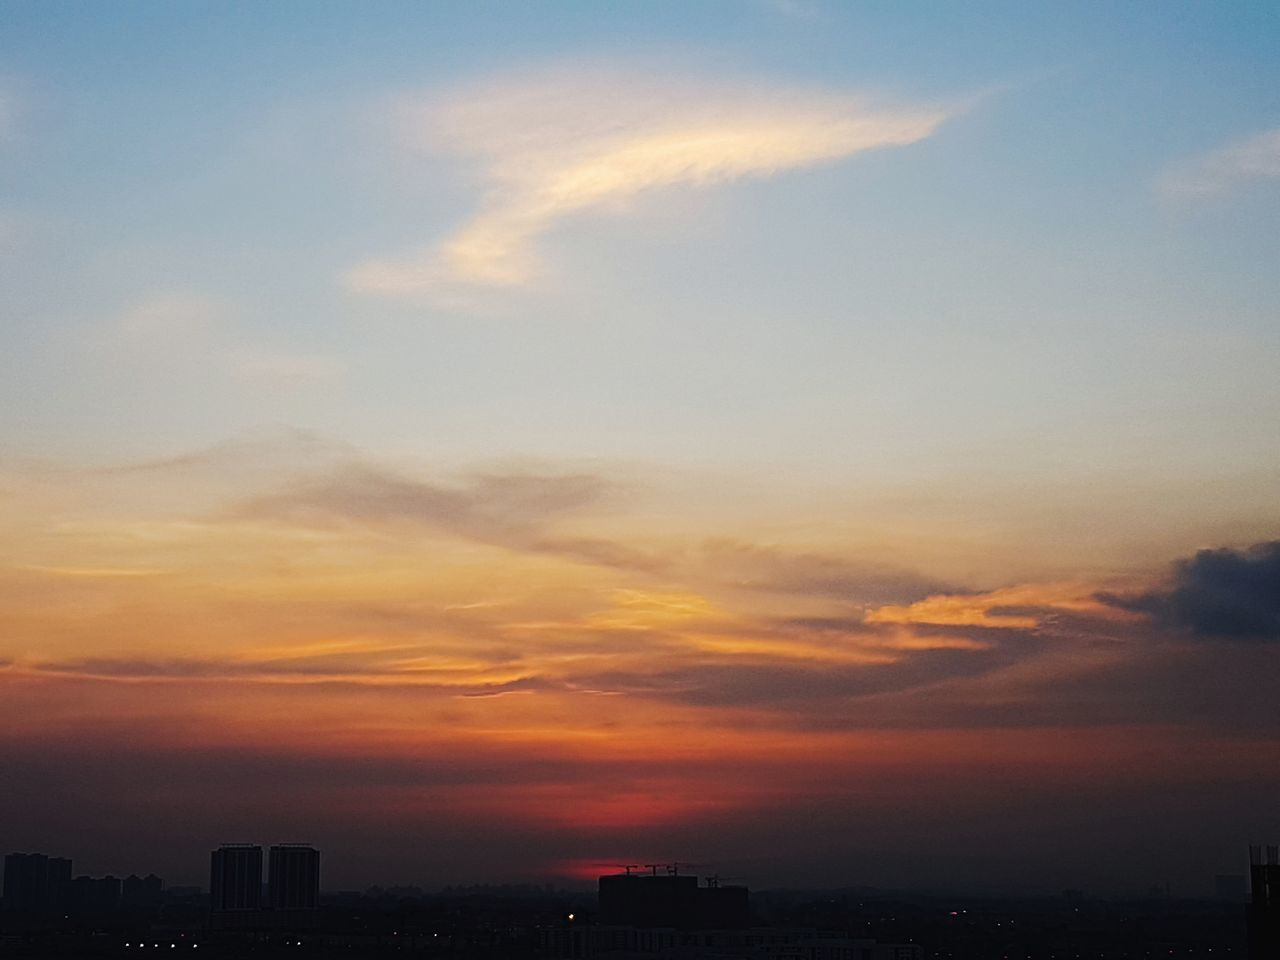 Sunset Dramatic Sky Cloud - Sky Urban Skyline Sky Cityscape City Skyscraper Travel Destinations Dusk Business Finance And Industry Architecture Scenics No People Awe Built Structure Travel Building Exterior Multi Colored Vacations Malaysia Johor Bahru